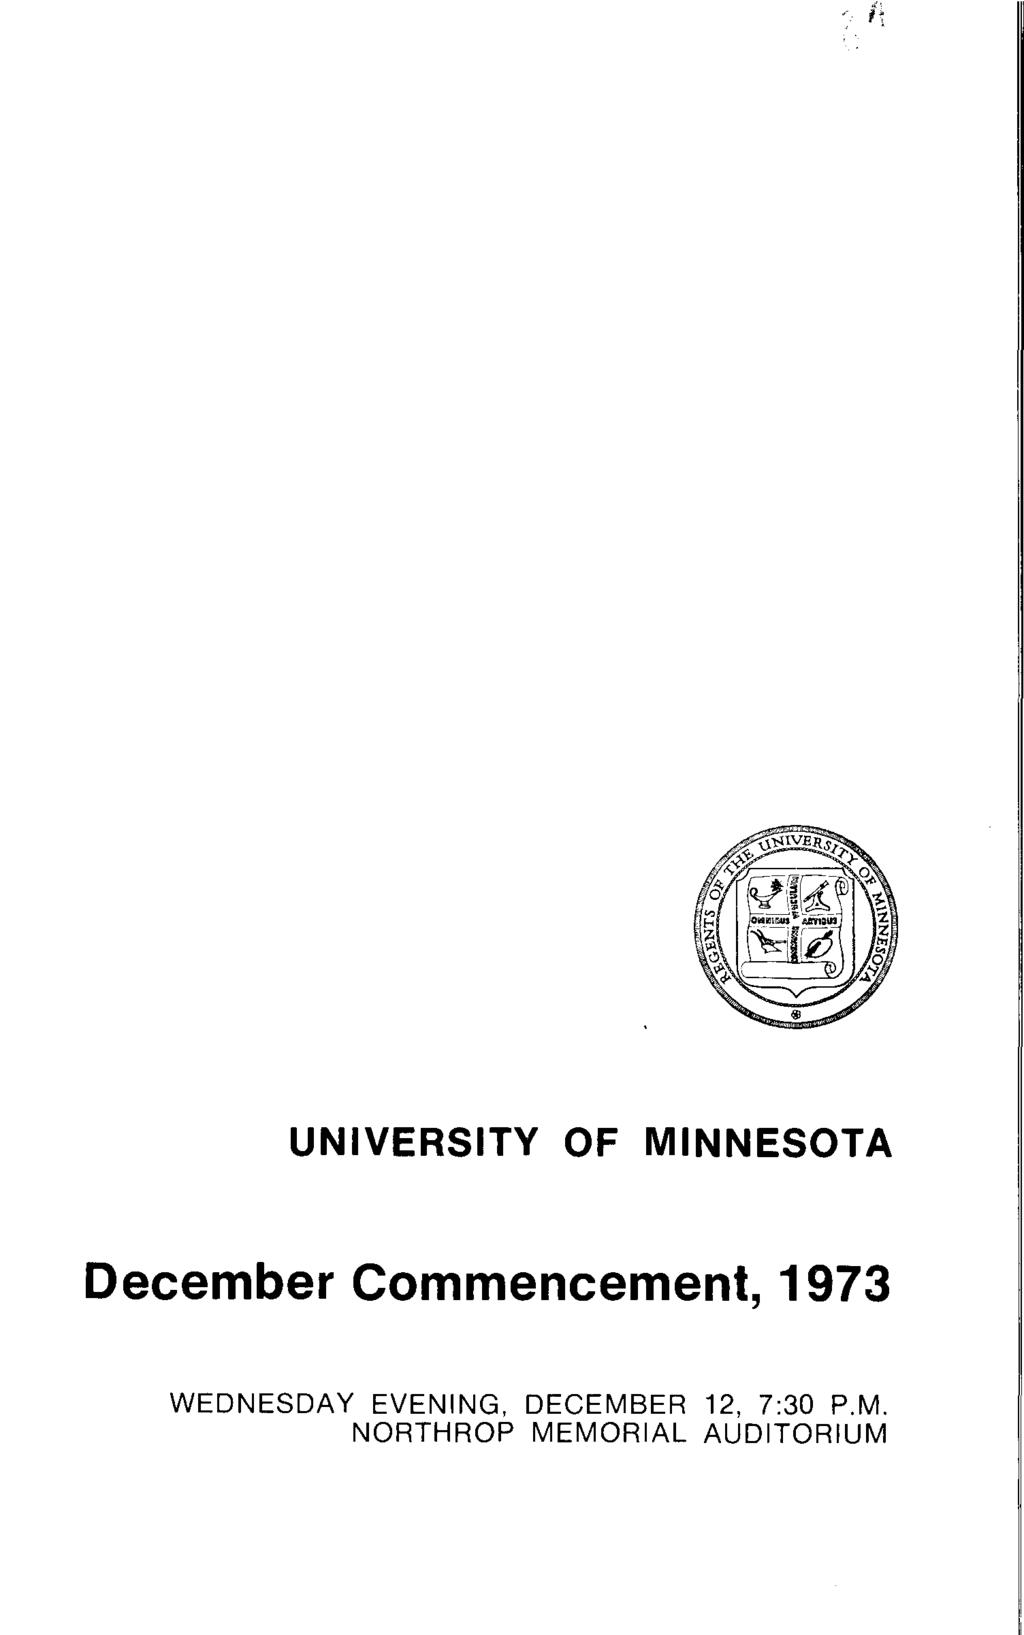 UNIVERSITY OF MINNESOTA December Commencement, 1973